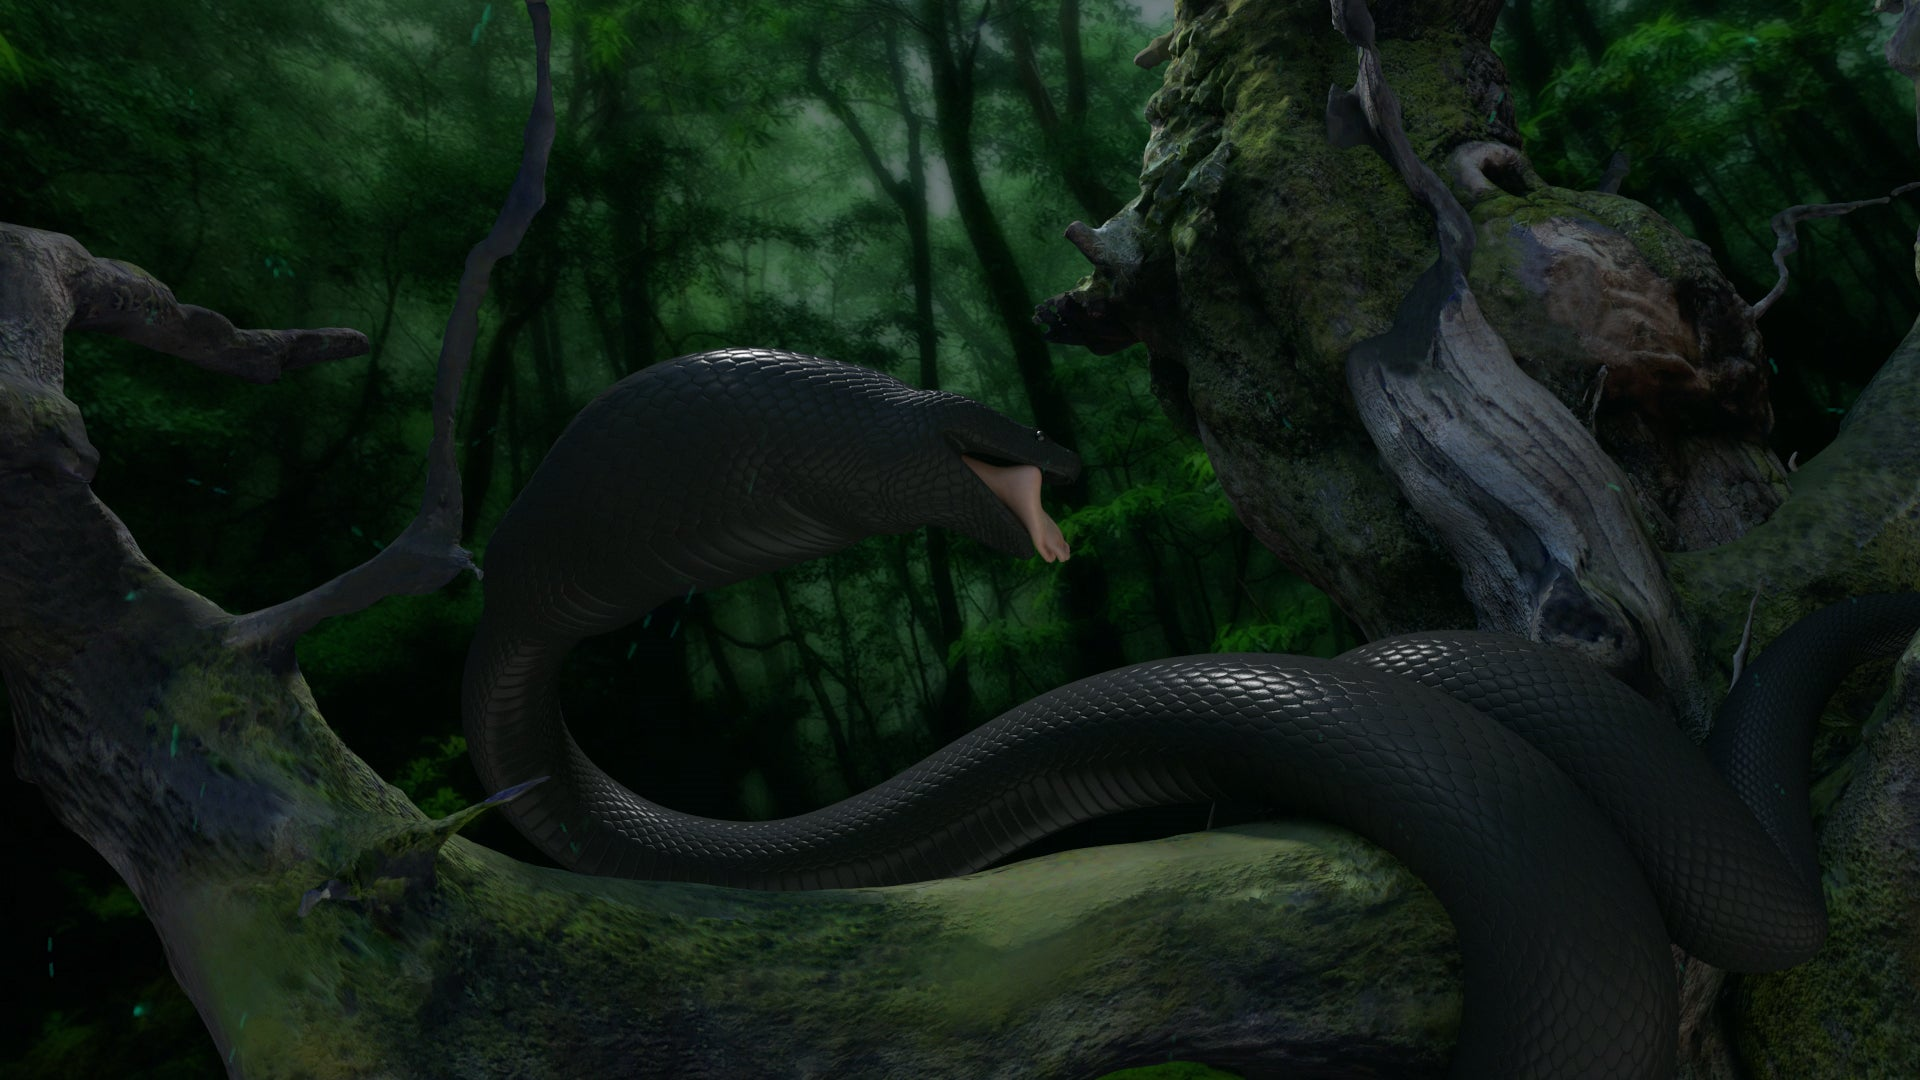 Dream of Titanoboa 1 - Epic Snake Vore